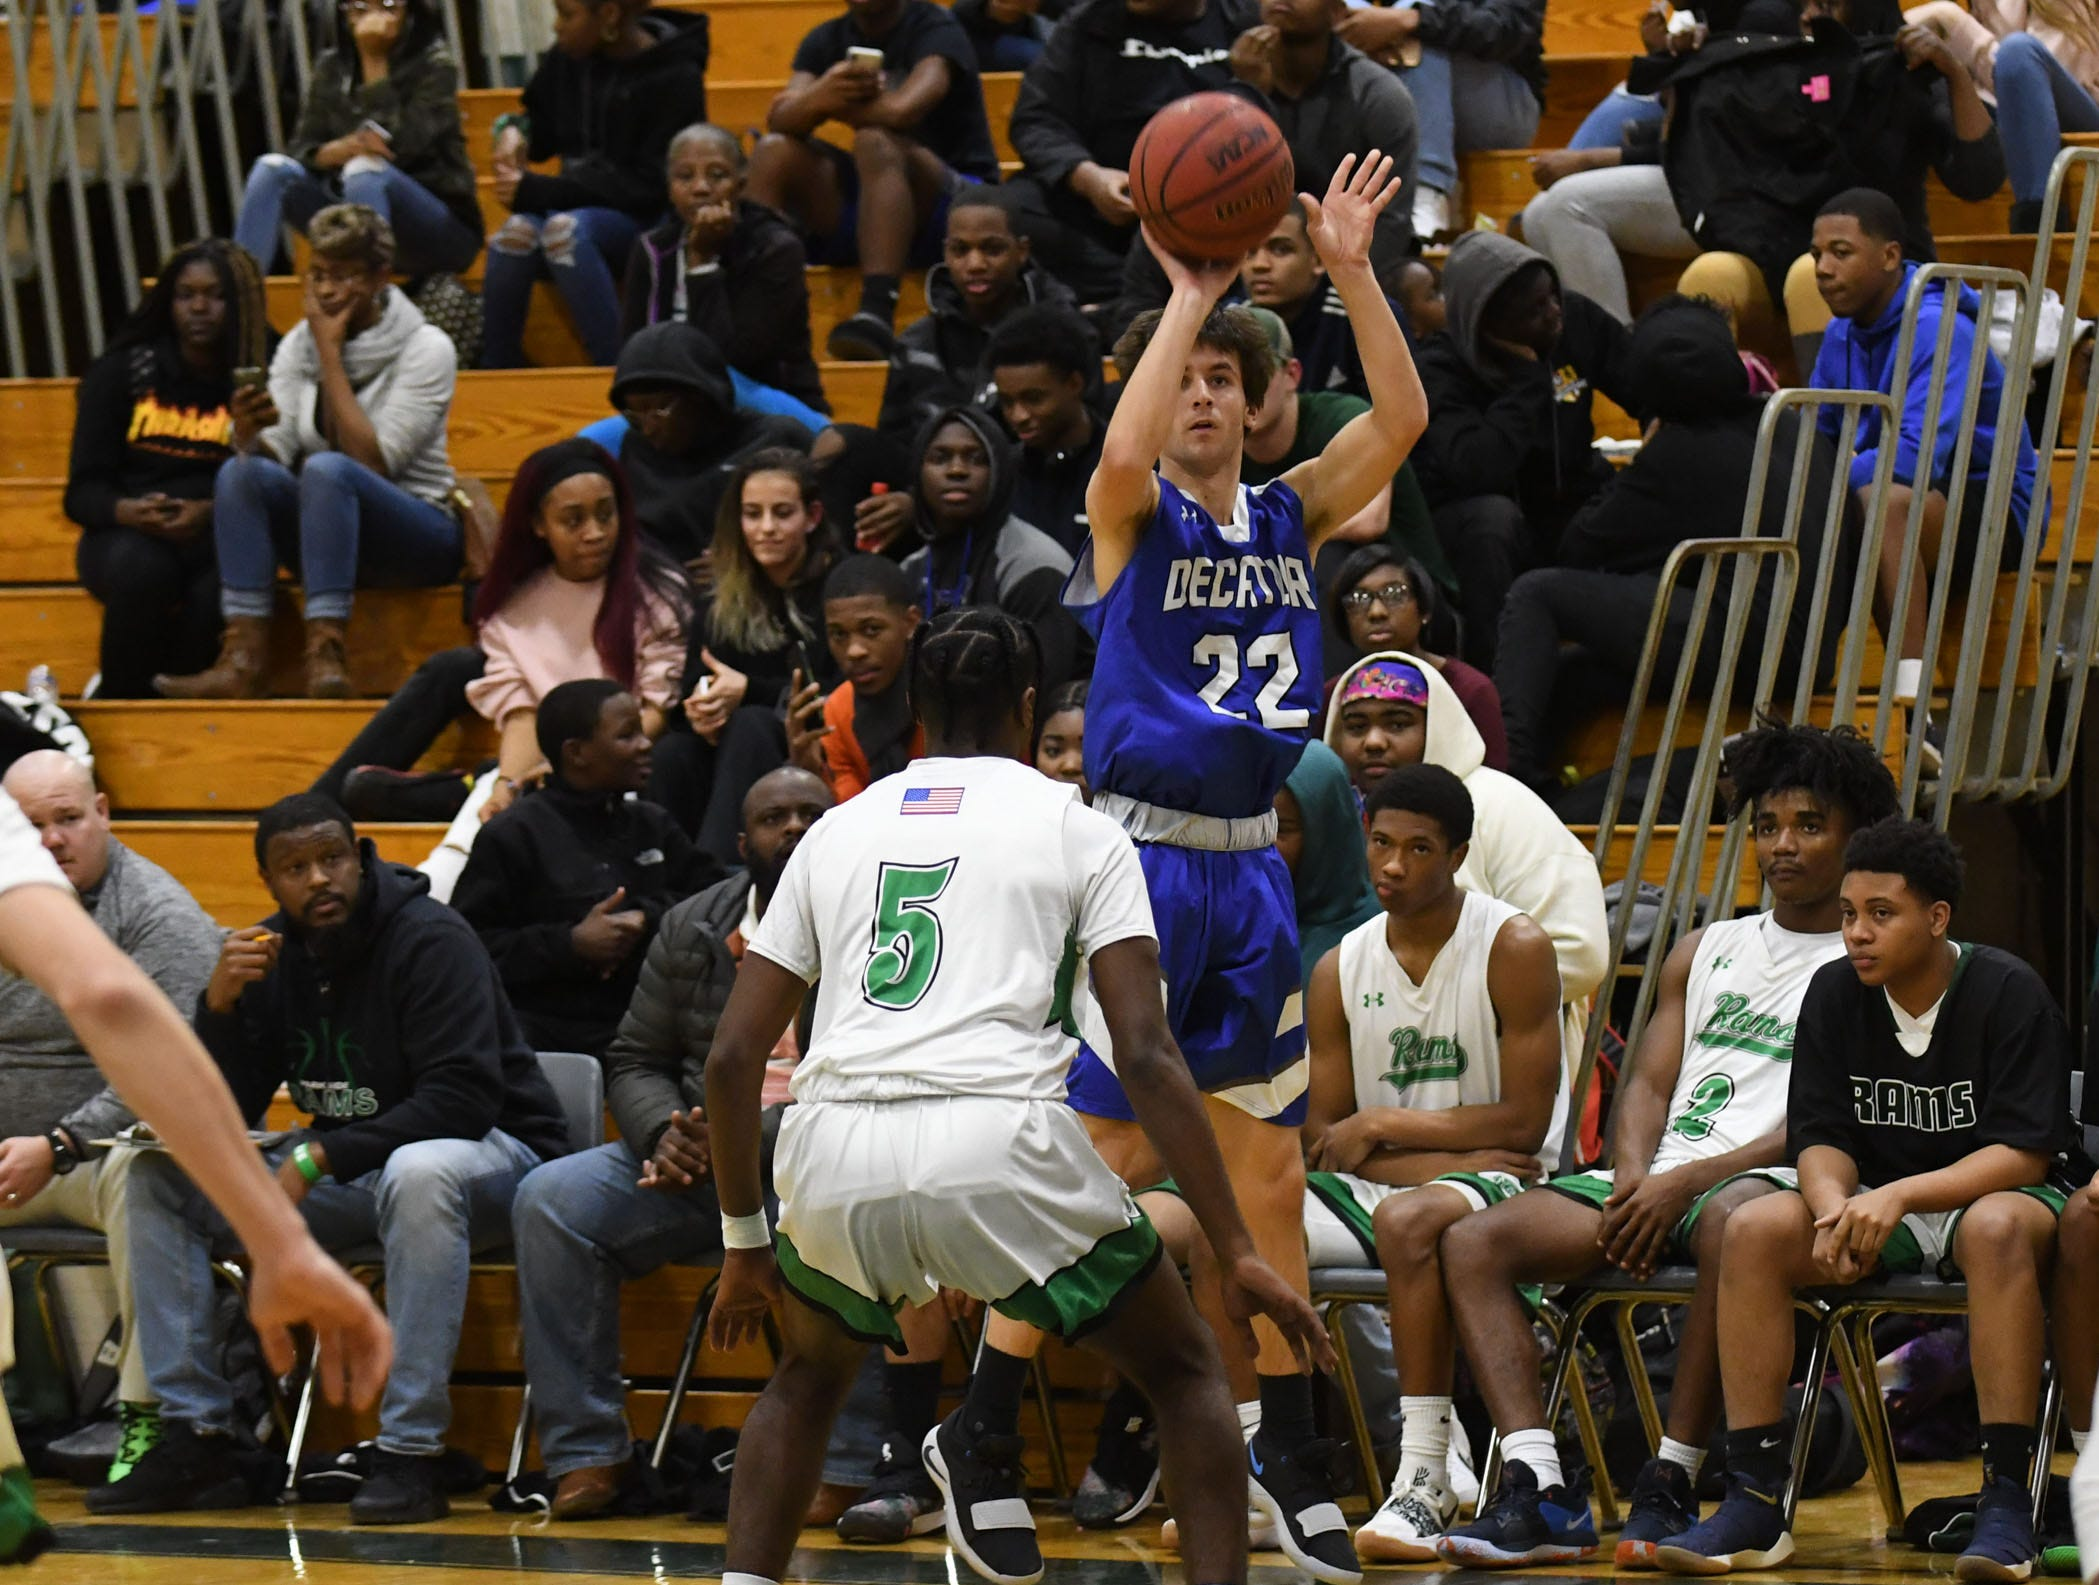 Stephen Decatur's Brett Berquest with the shot against Parkside on Thursday, Jan. 10, 2019.